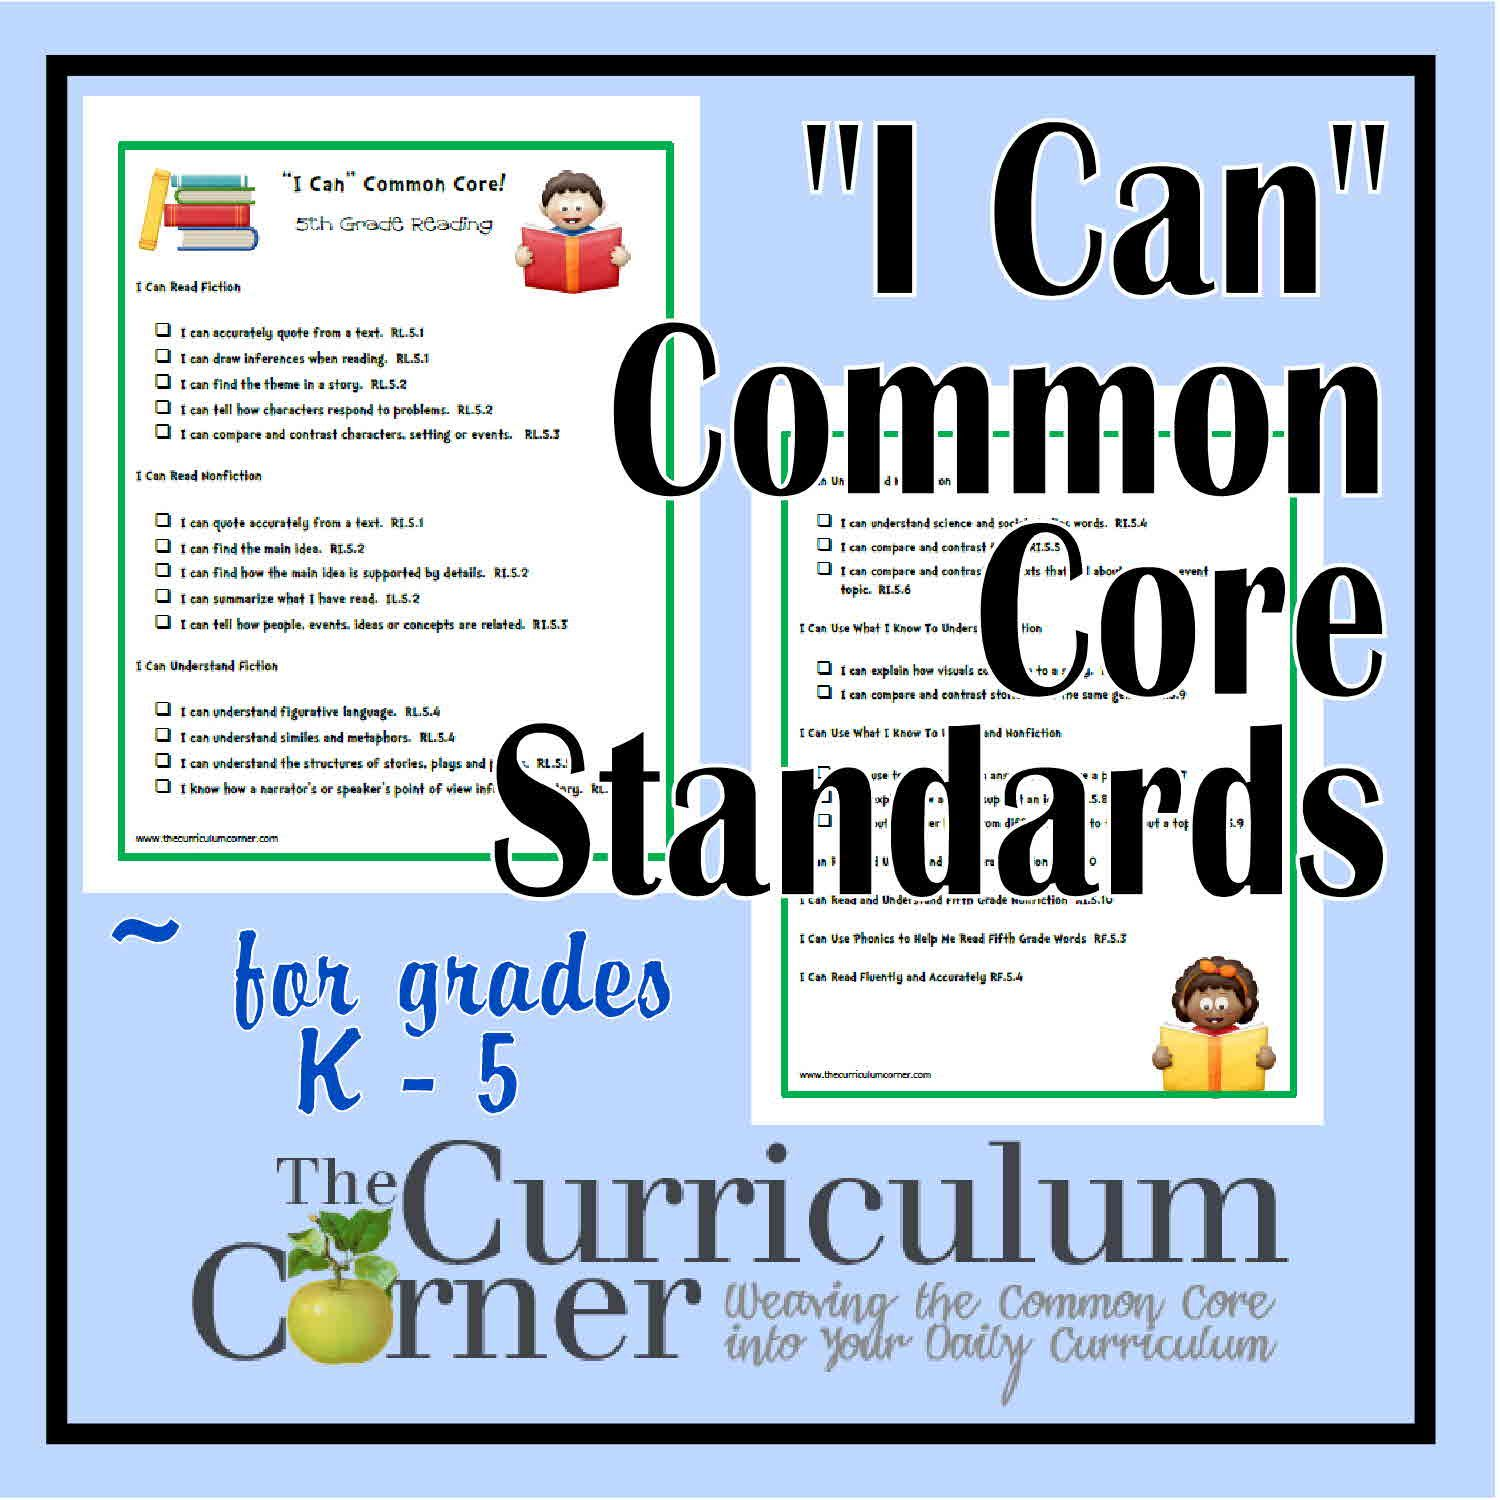 Everything I Can Common Core